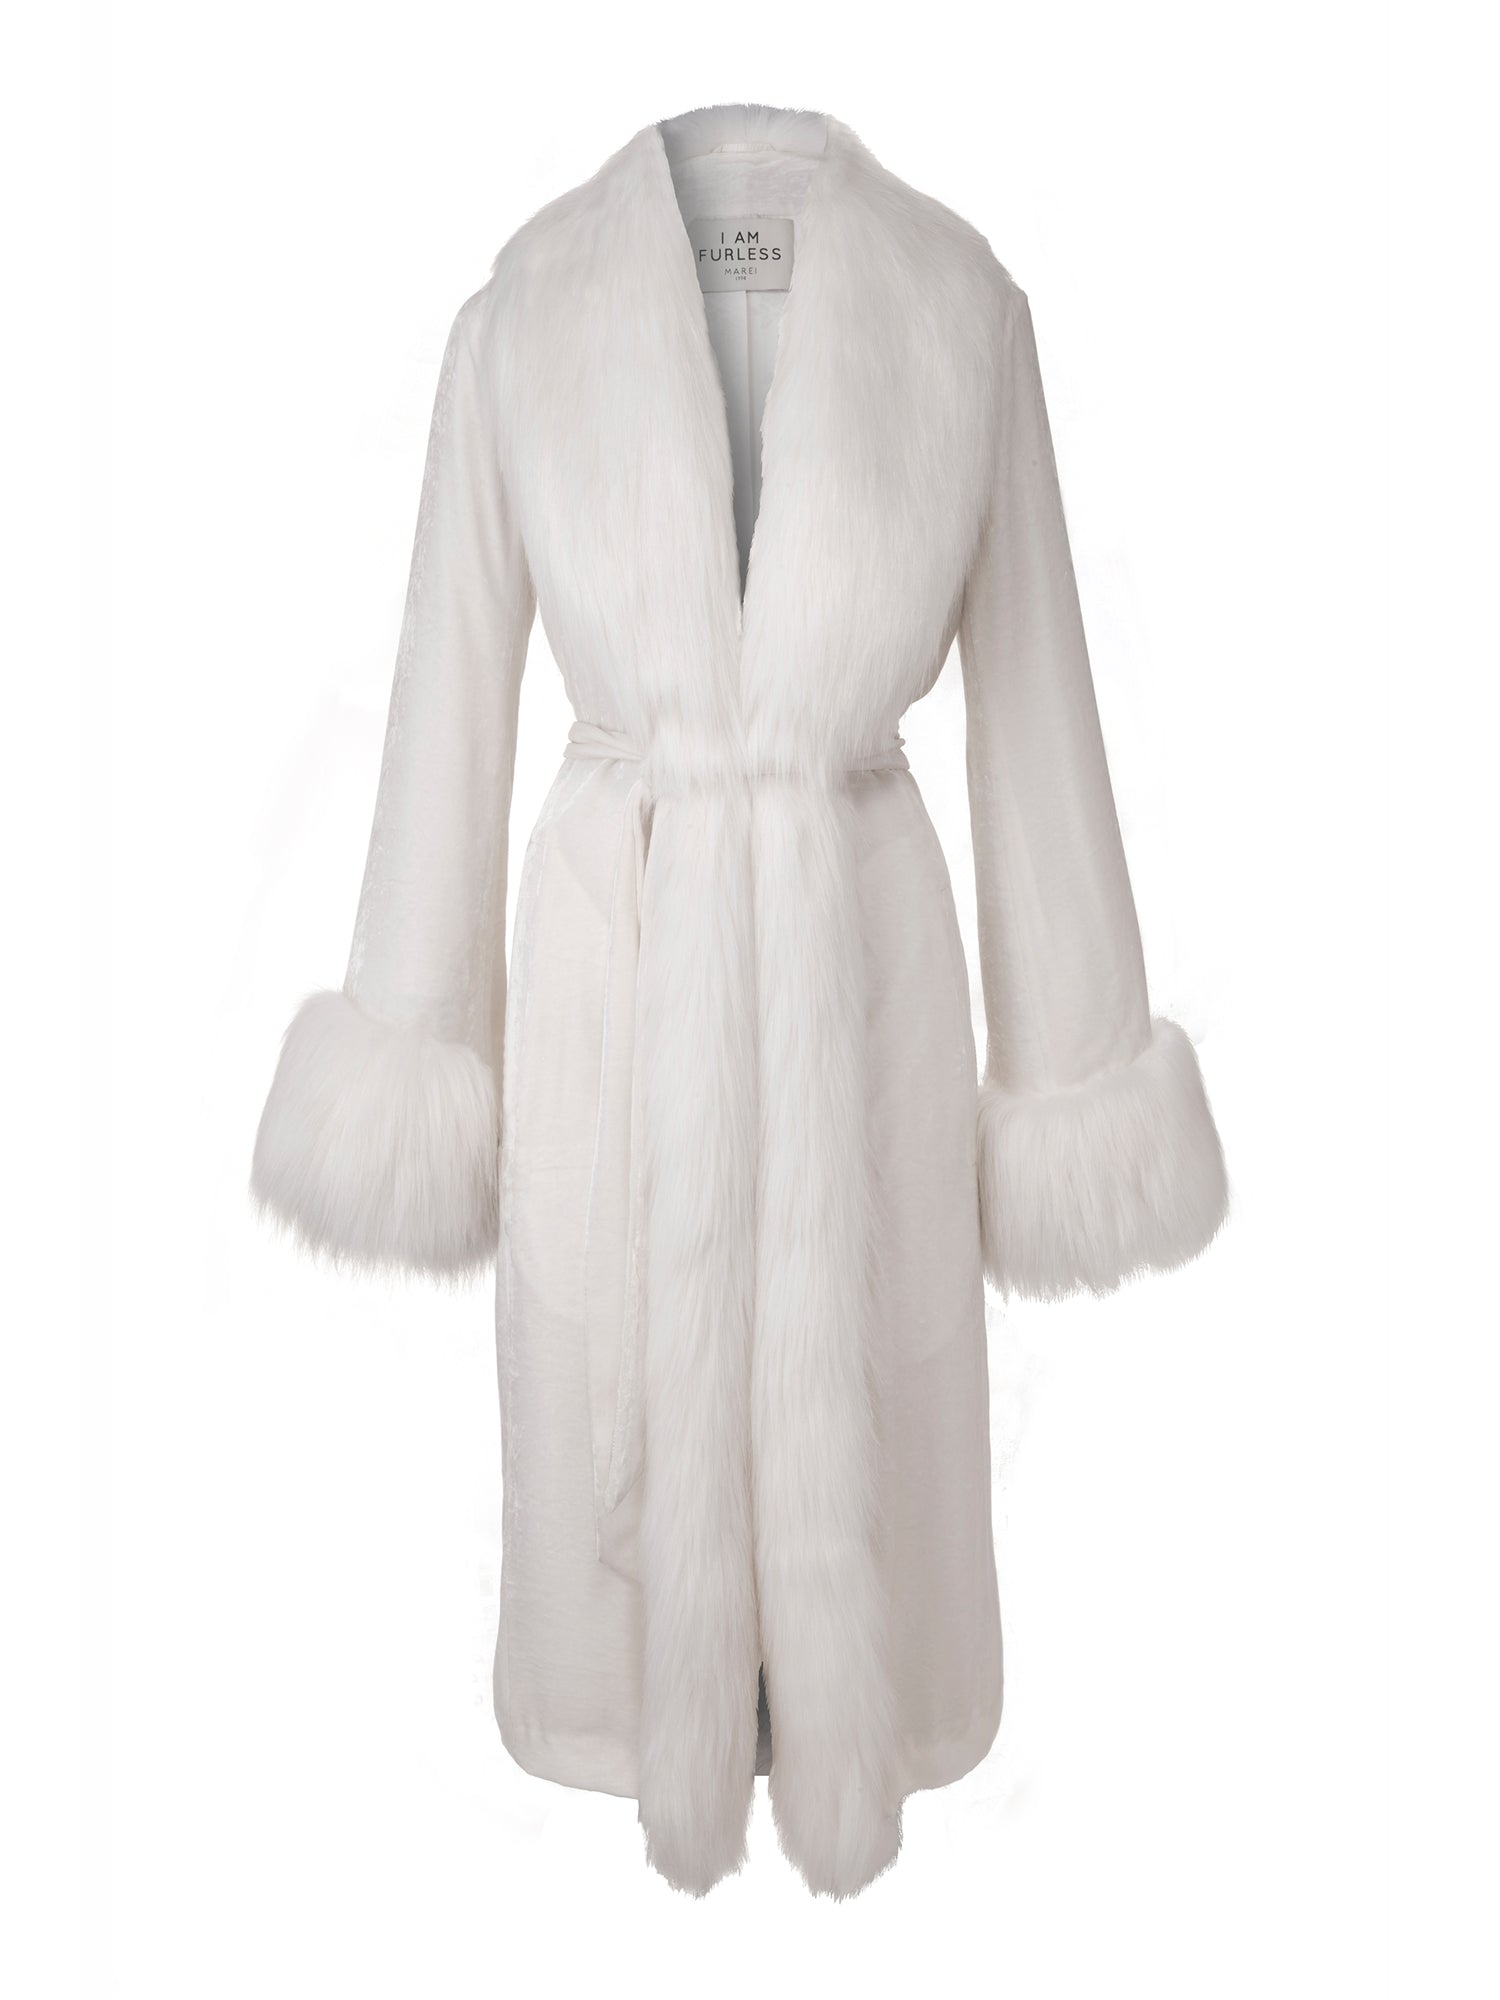 A Packshot Of Marei1998's Powderpuff Long Velvet Coat In White Color. The Silk Velvet Material, Combined With Fur Trims, Creates A Contemporary Vintage Look. Featuring Wide Lapel Collar And Bell Sleeves, It Is Finished With A Self-Tie Belt To Define The Waist. Front View. Resort 2020 Collection - Furless Friendship.